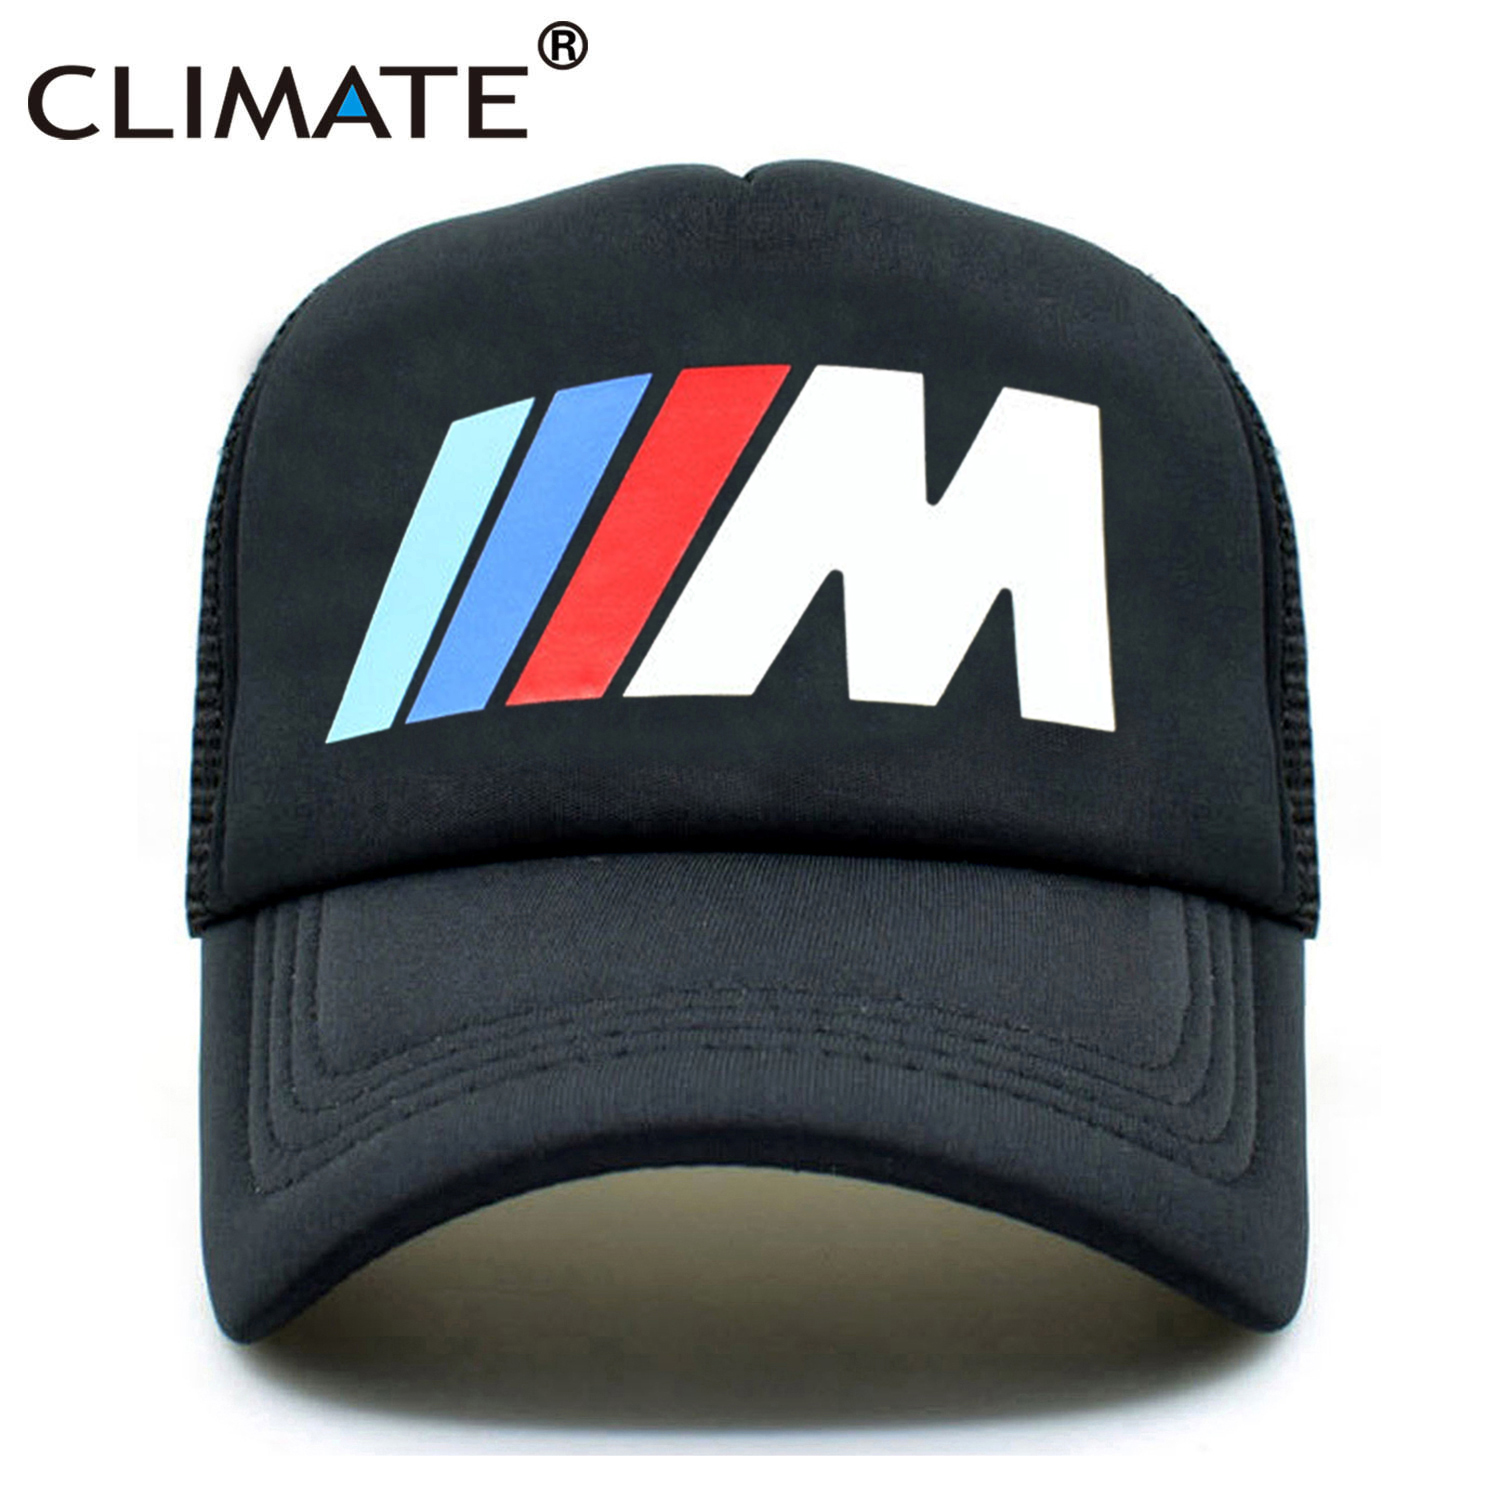 CLIMATE Men New Mesh Trucker Caps M3 M5 Car Fans Cool Summer Adult Logo Cool Black Baseball Mesh Net Trucker Caps Hat for Men